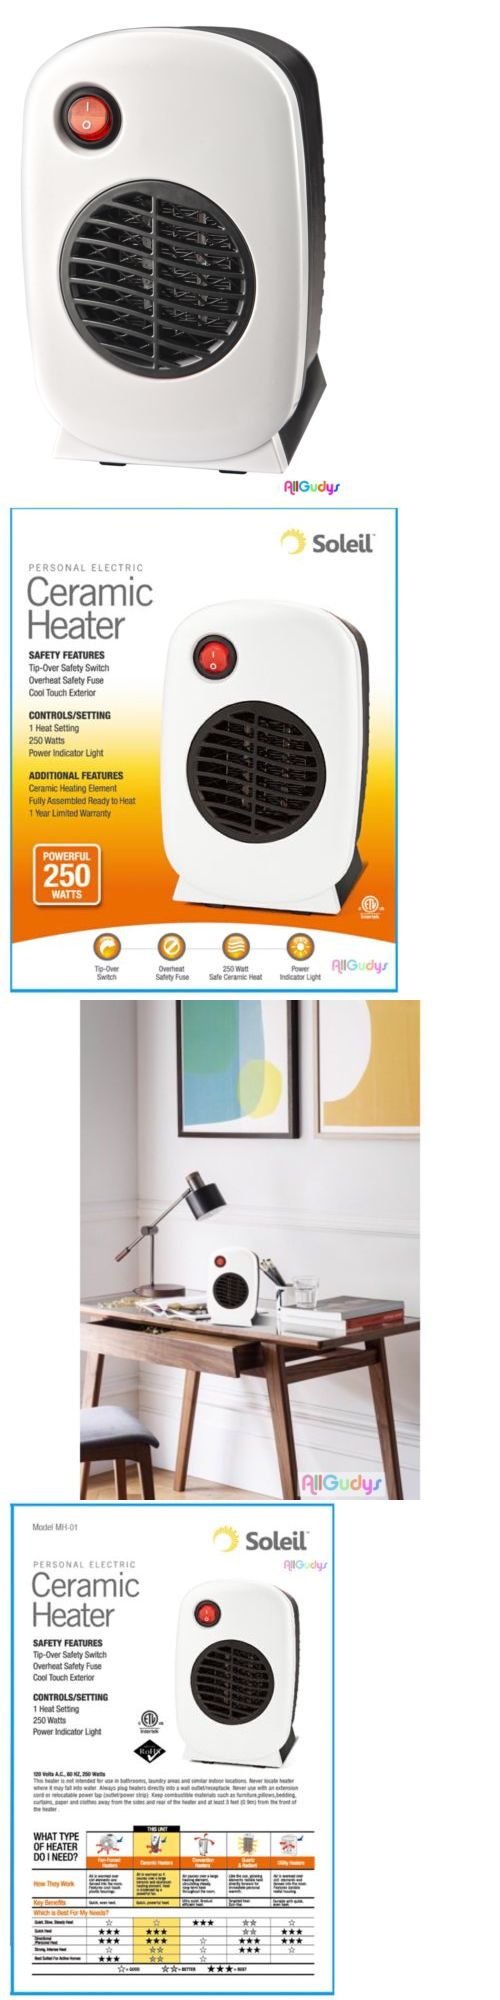 New Ceramic Heater Personal Portable Soleil Electric Space Heater Small White Ebay Ceramic Heater Small Heater New Ceramics